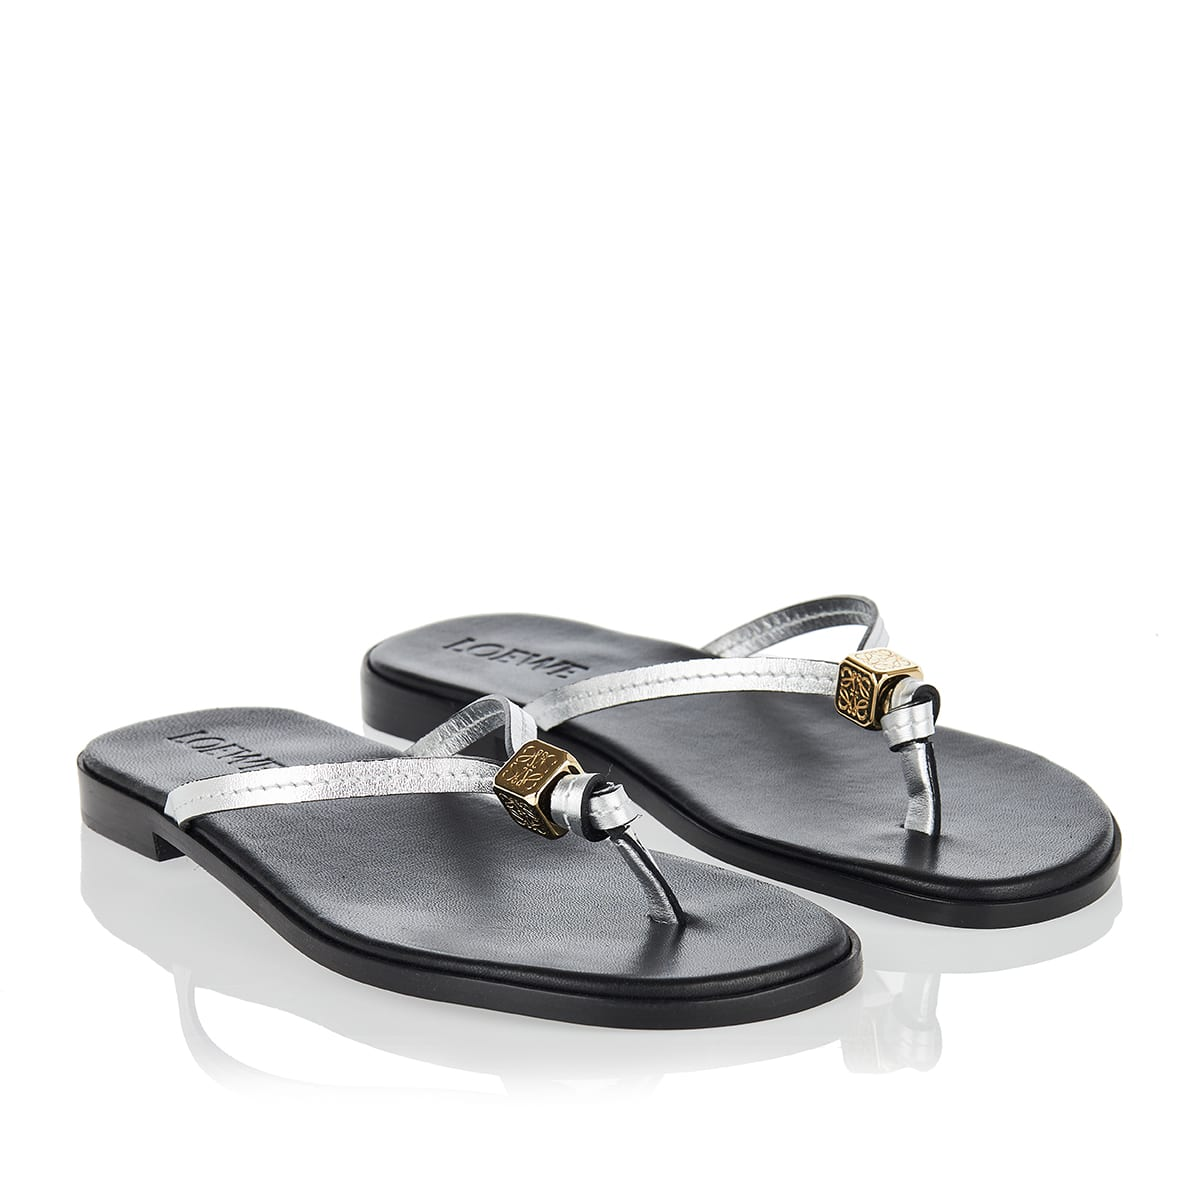 Dice metallic leather thong sandals